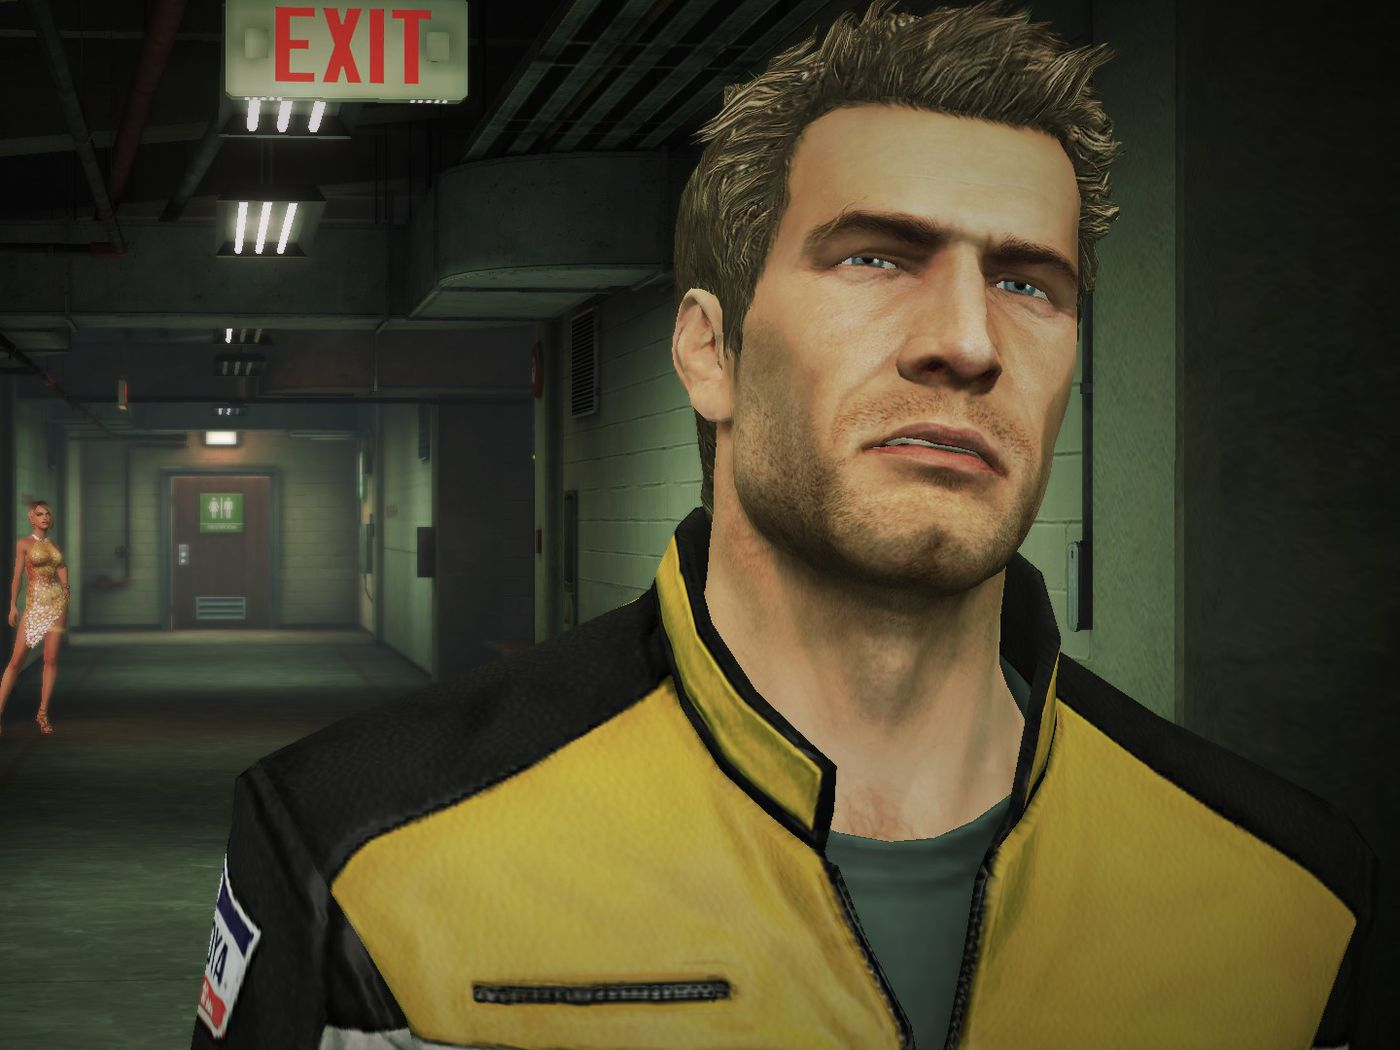 Last Gen Dead Rising Games Coming To Ps4 And Xbox One Next Month Playstation 4 Polygon